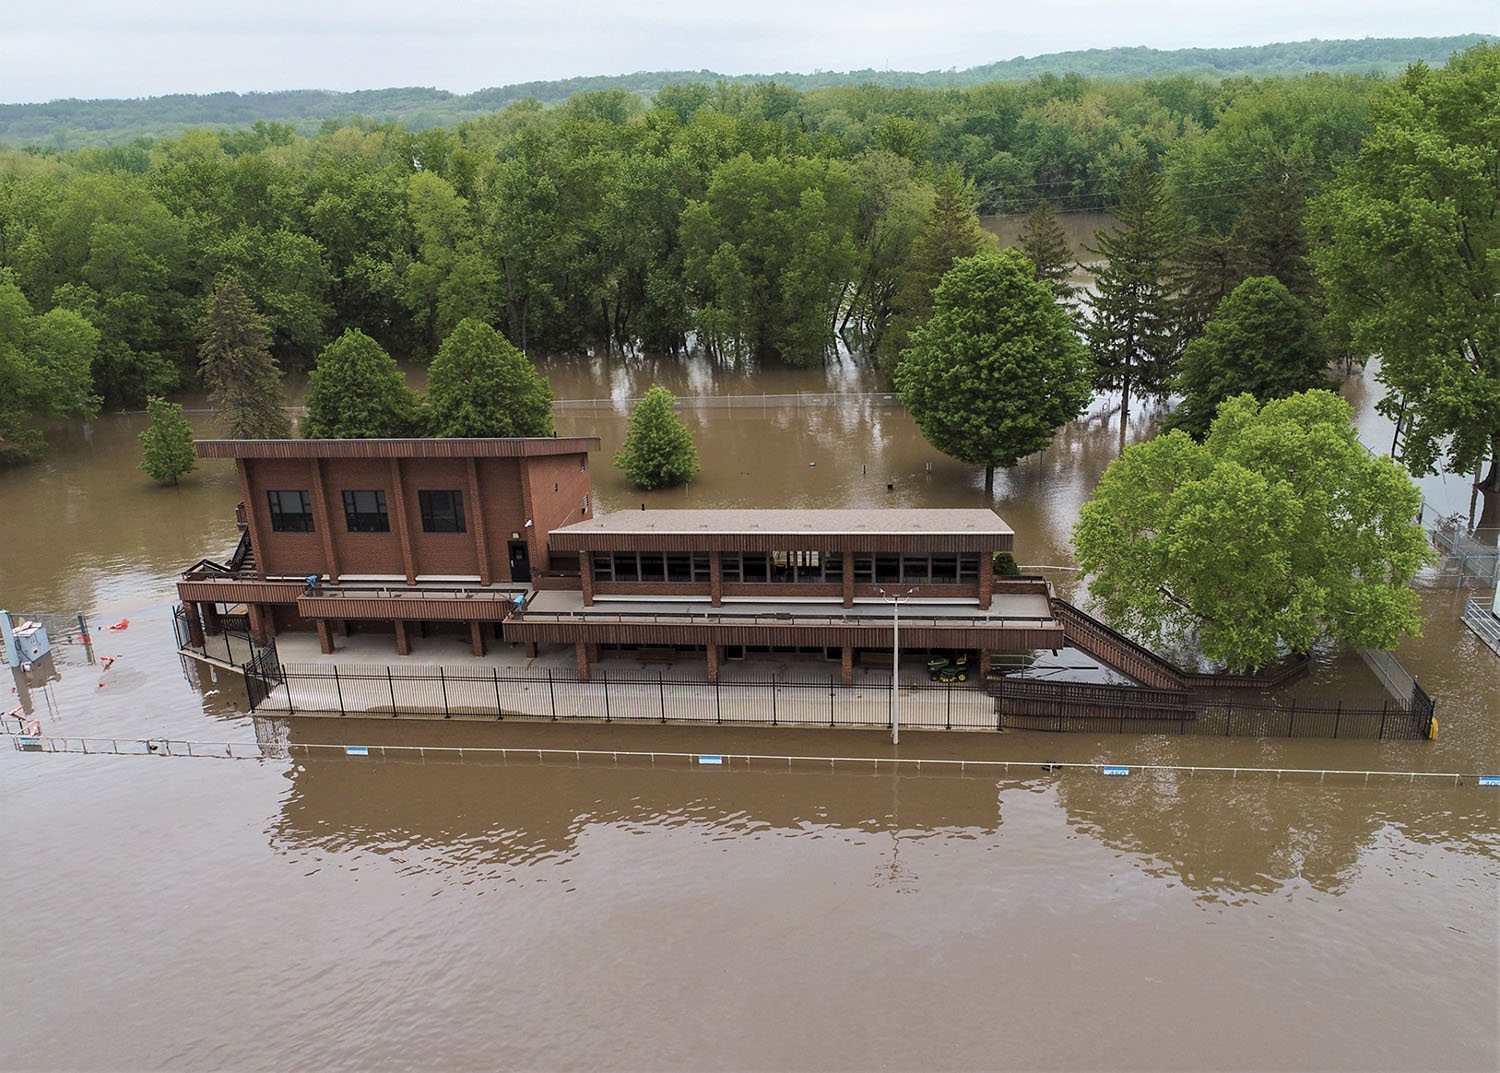 The Illinois Waterway Visitor Center at Starved Rock Lock and Dam at Ottawa, Ill., was an island last week as heavy rains caused flooding on the upper portions of the waterway. (Rock Island Engineer District photo)